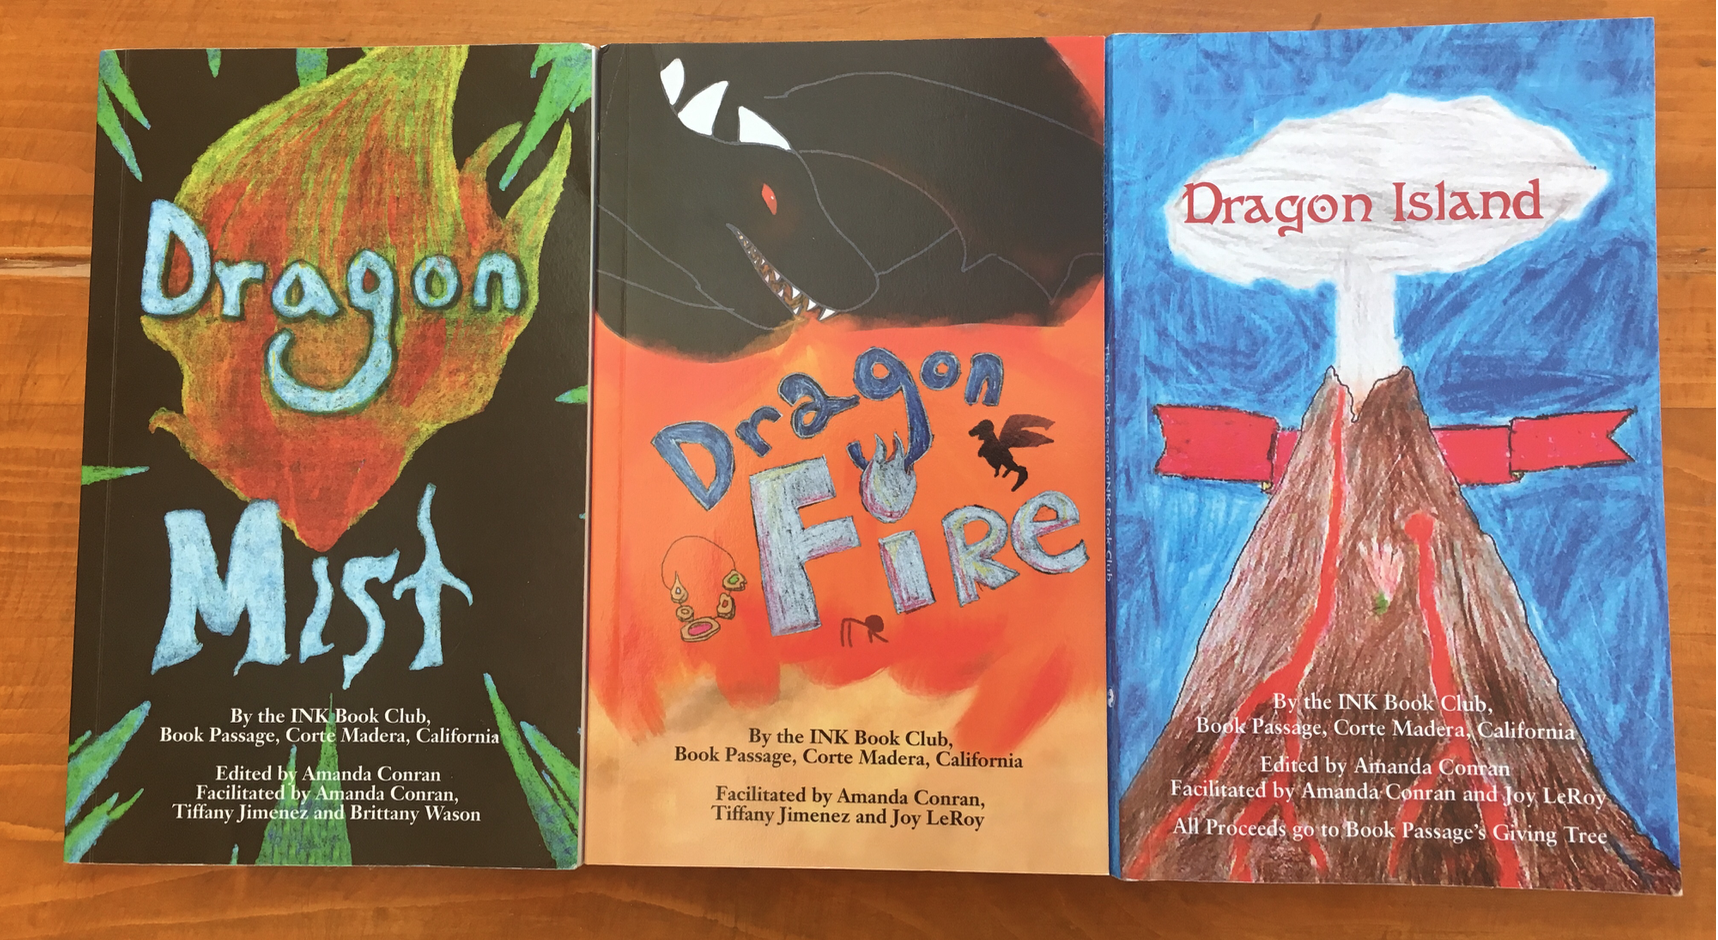 The Dragon Mist  Trilogy by INK